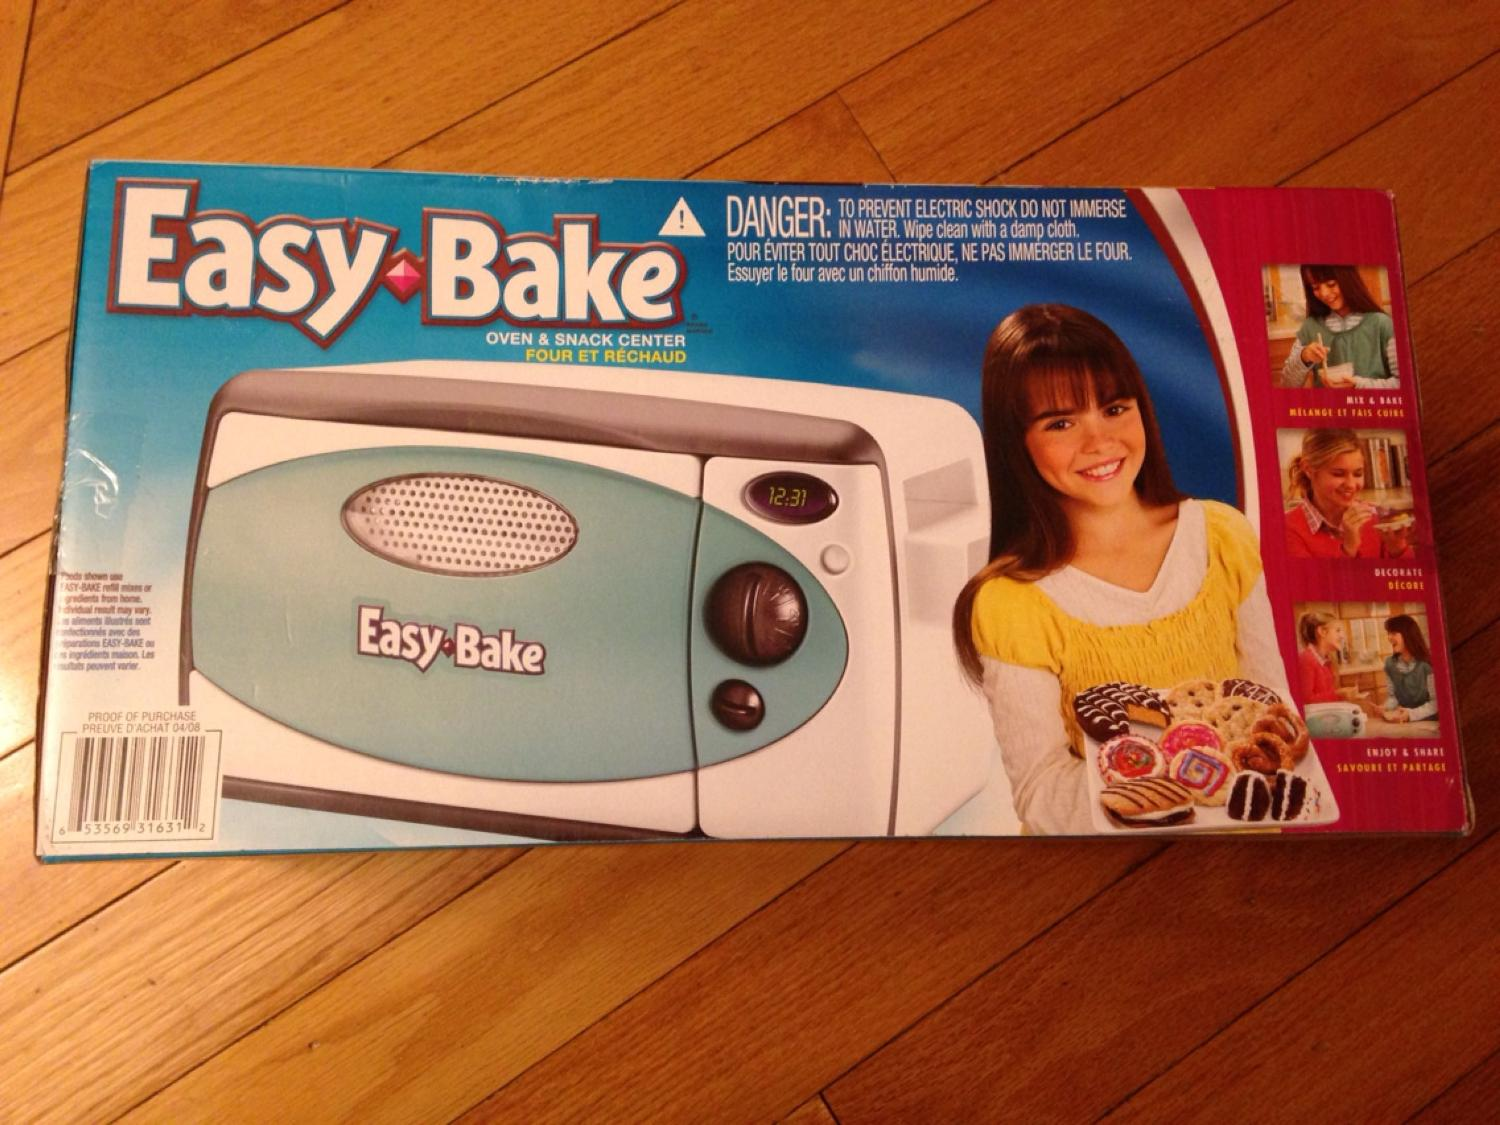 Home snack center - Find More Brand New Easy Bake Oven Snack Center For Sale At Up To 90 Off Ajax On